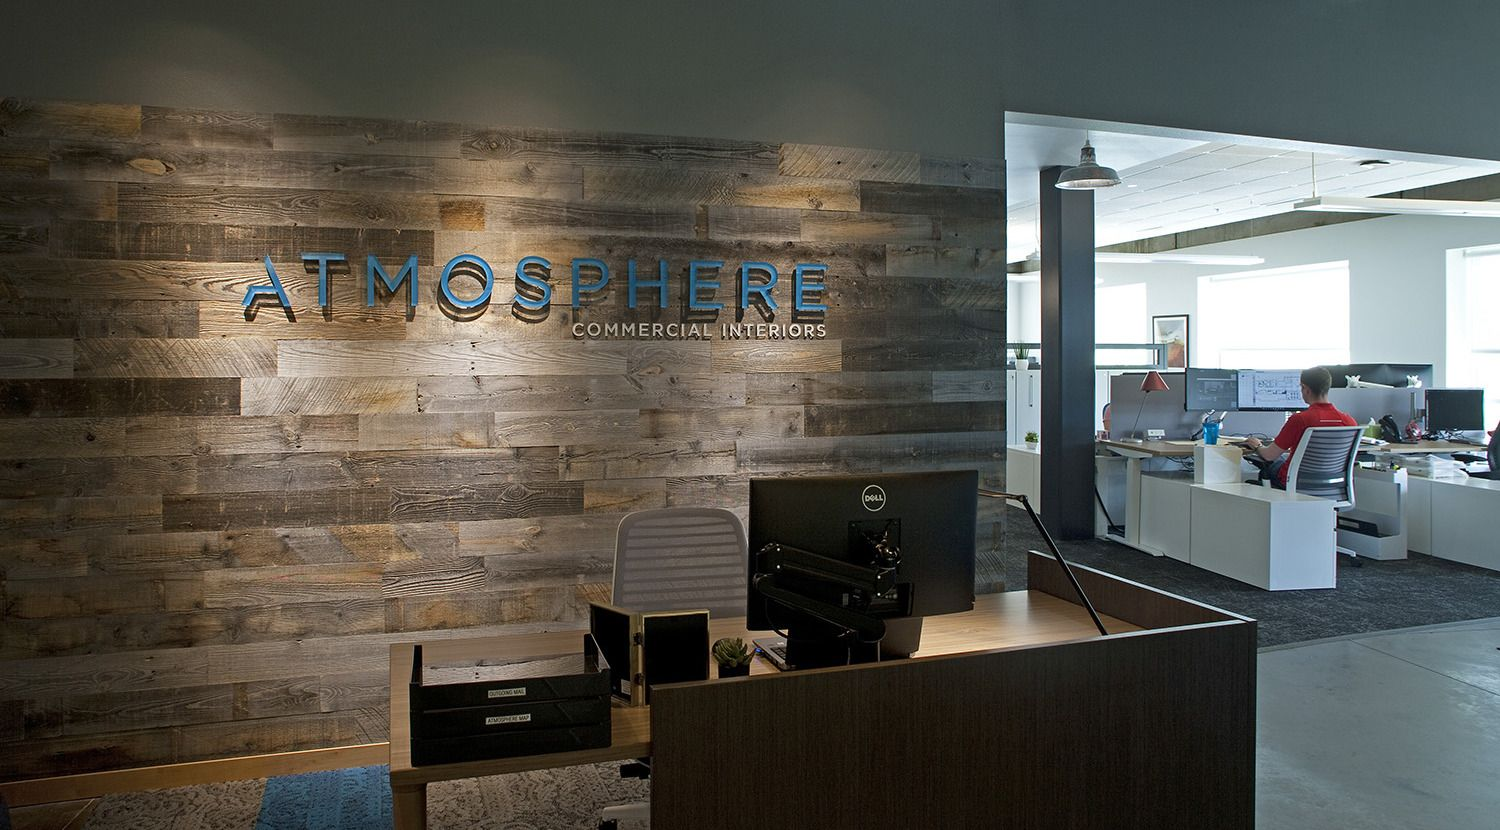 The Atmosphere Commercial Interiors Office Furniture Showroom